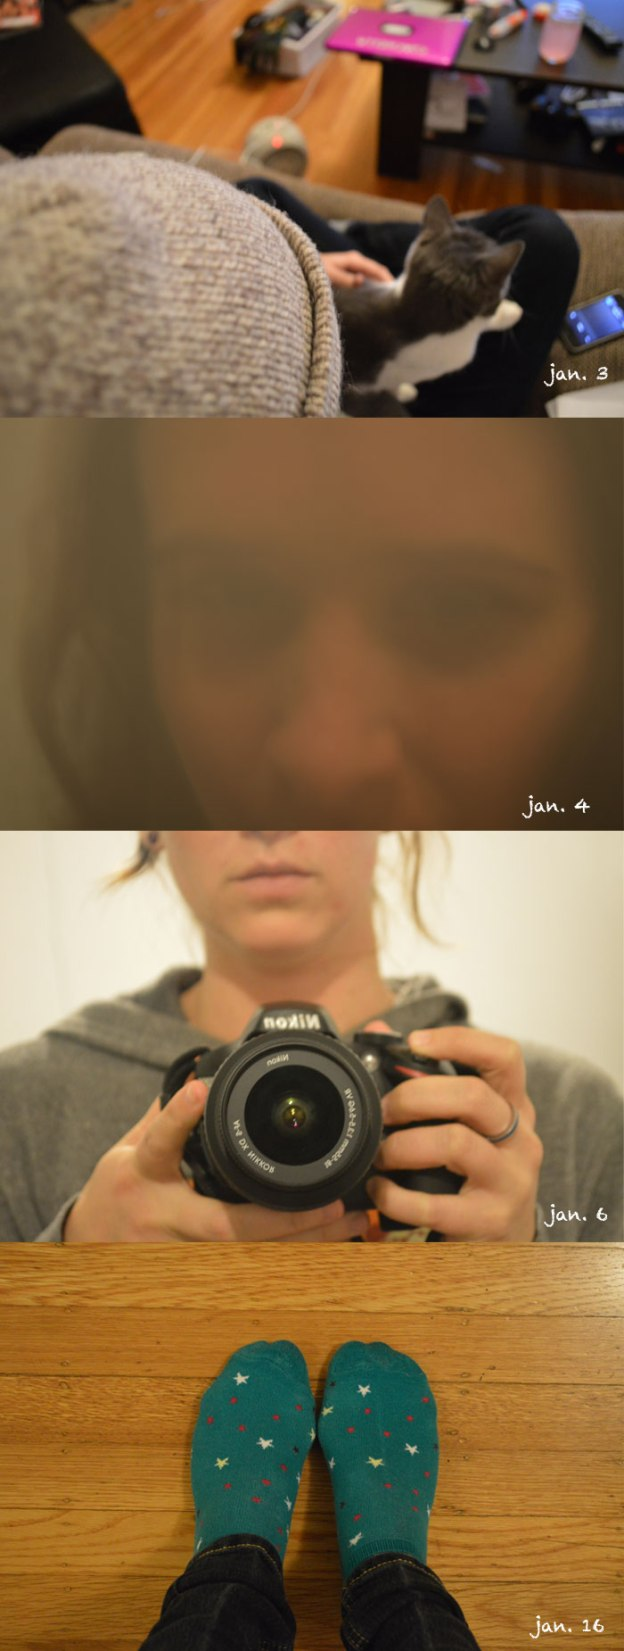 self portraits in january